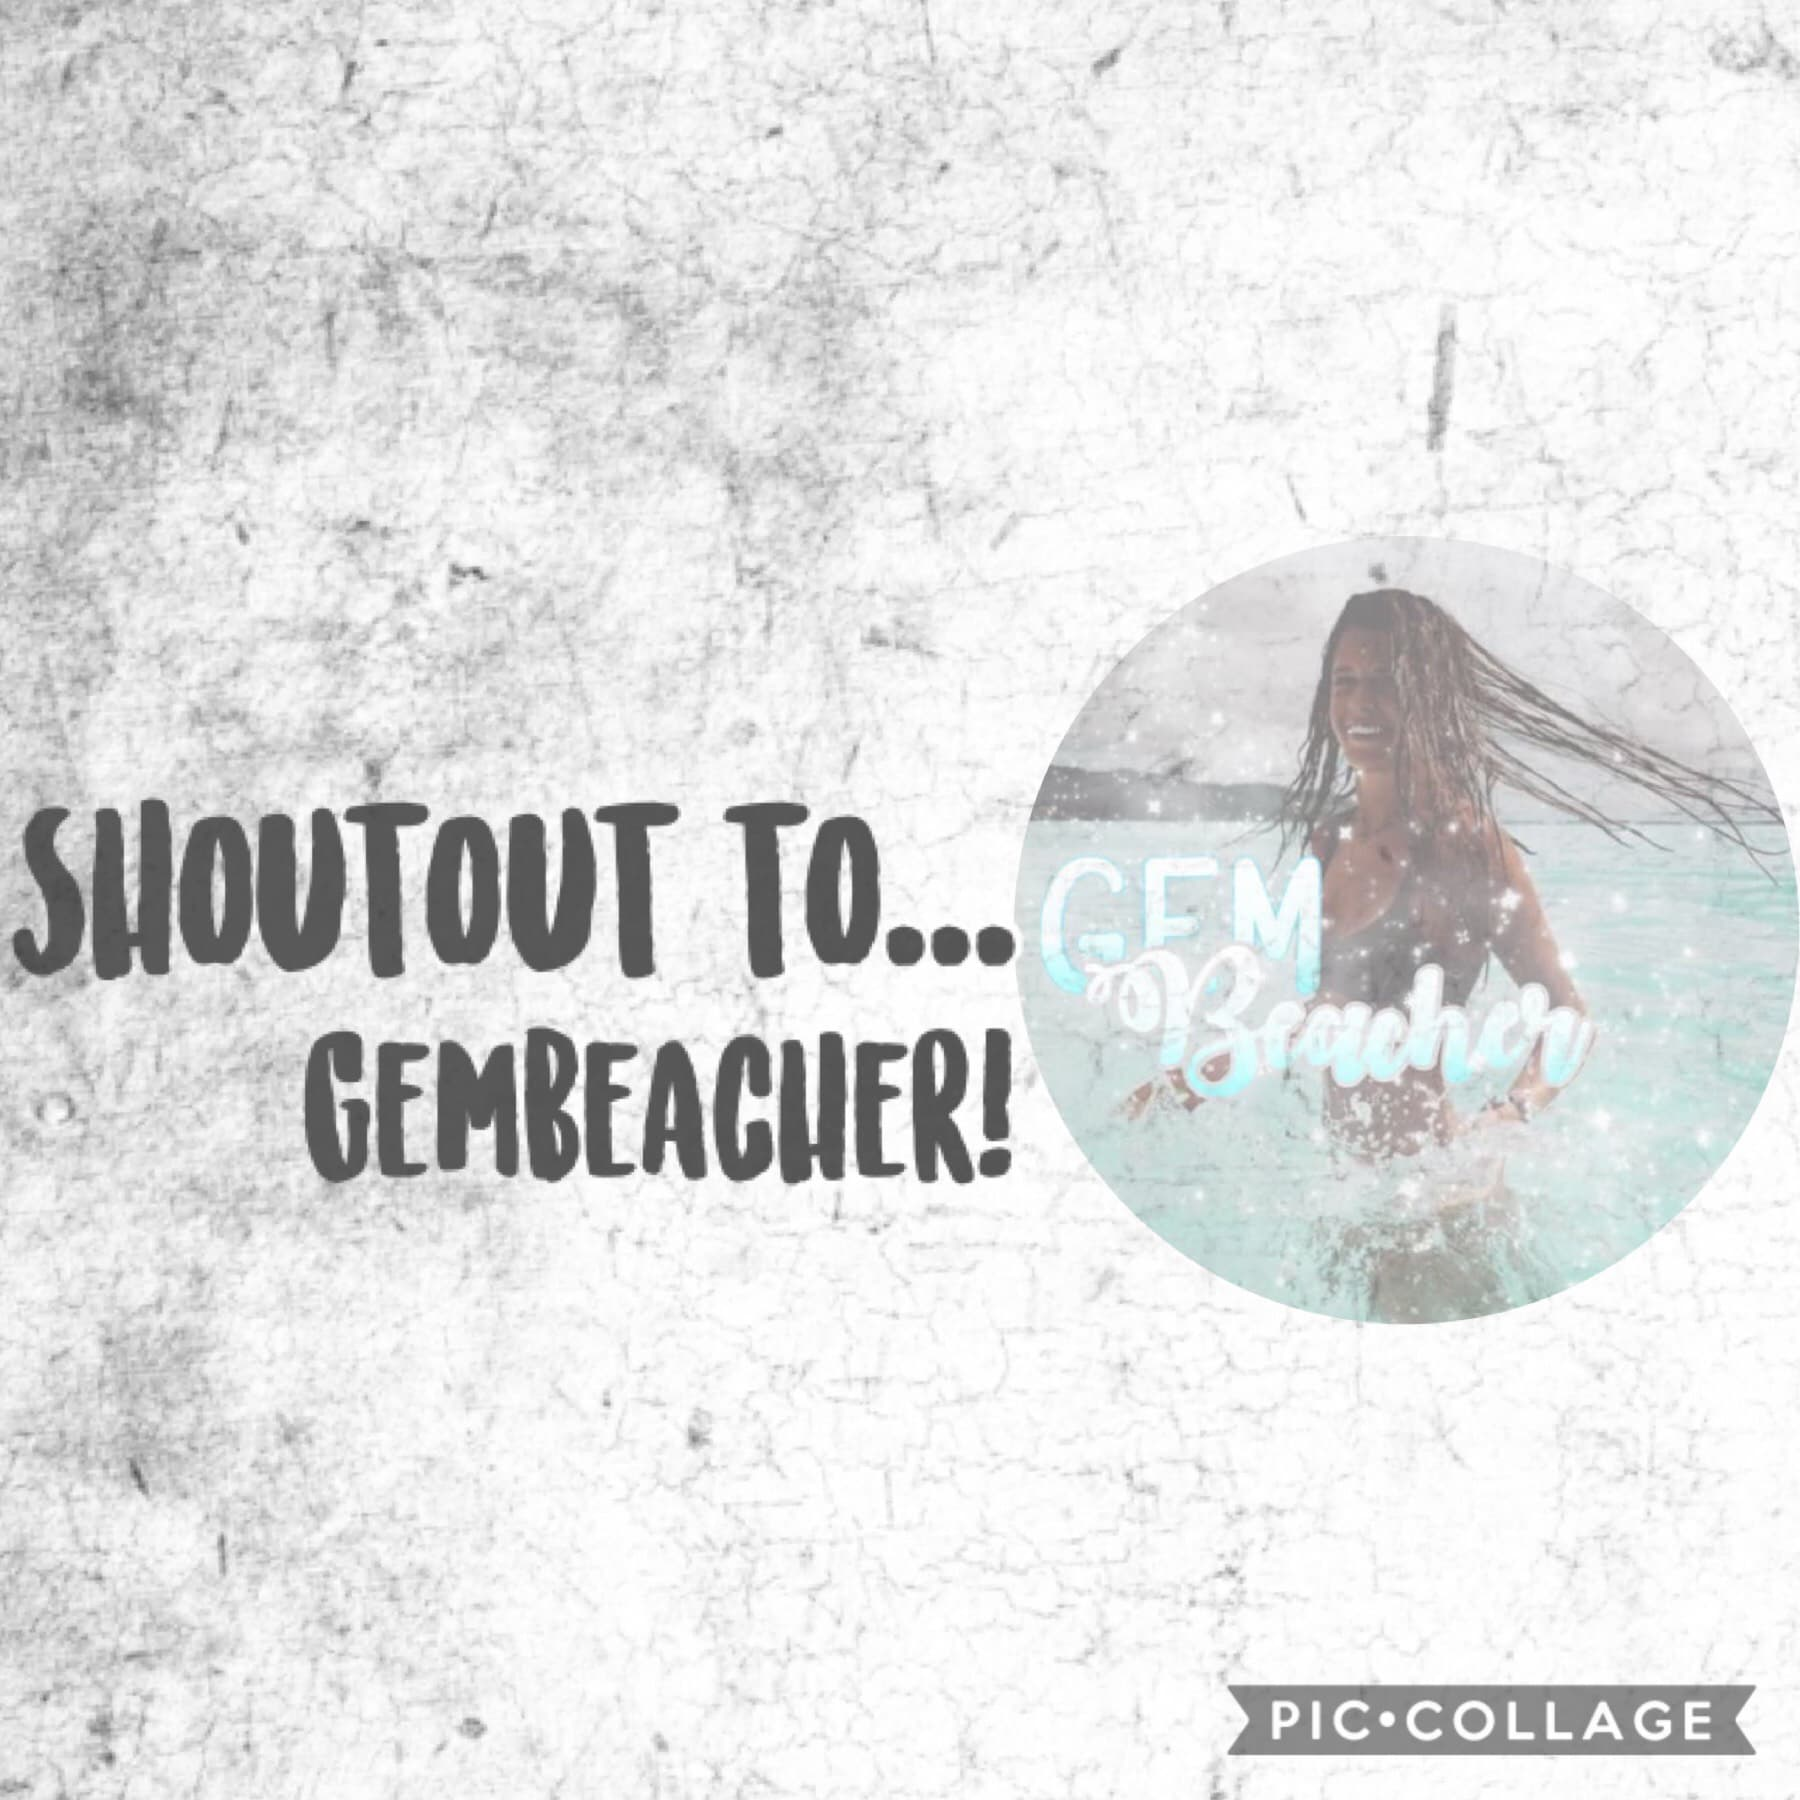 Shoutout to.... Gembeacher!